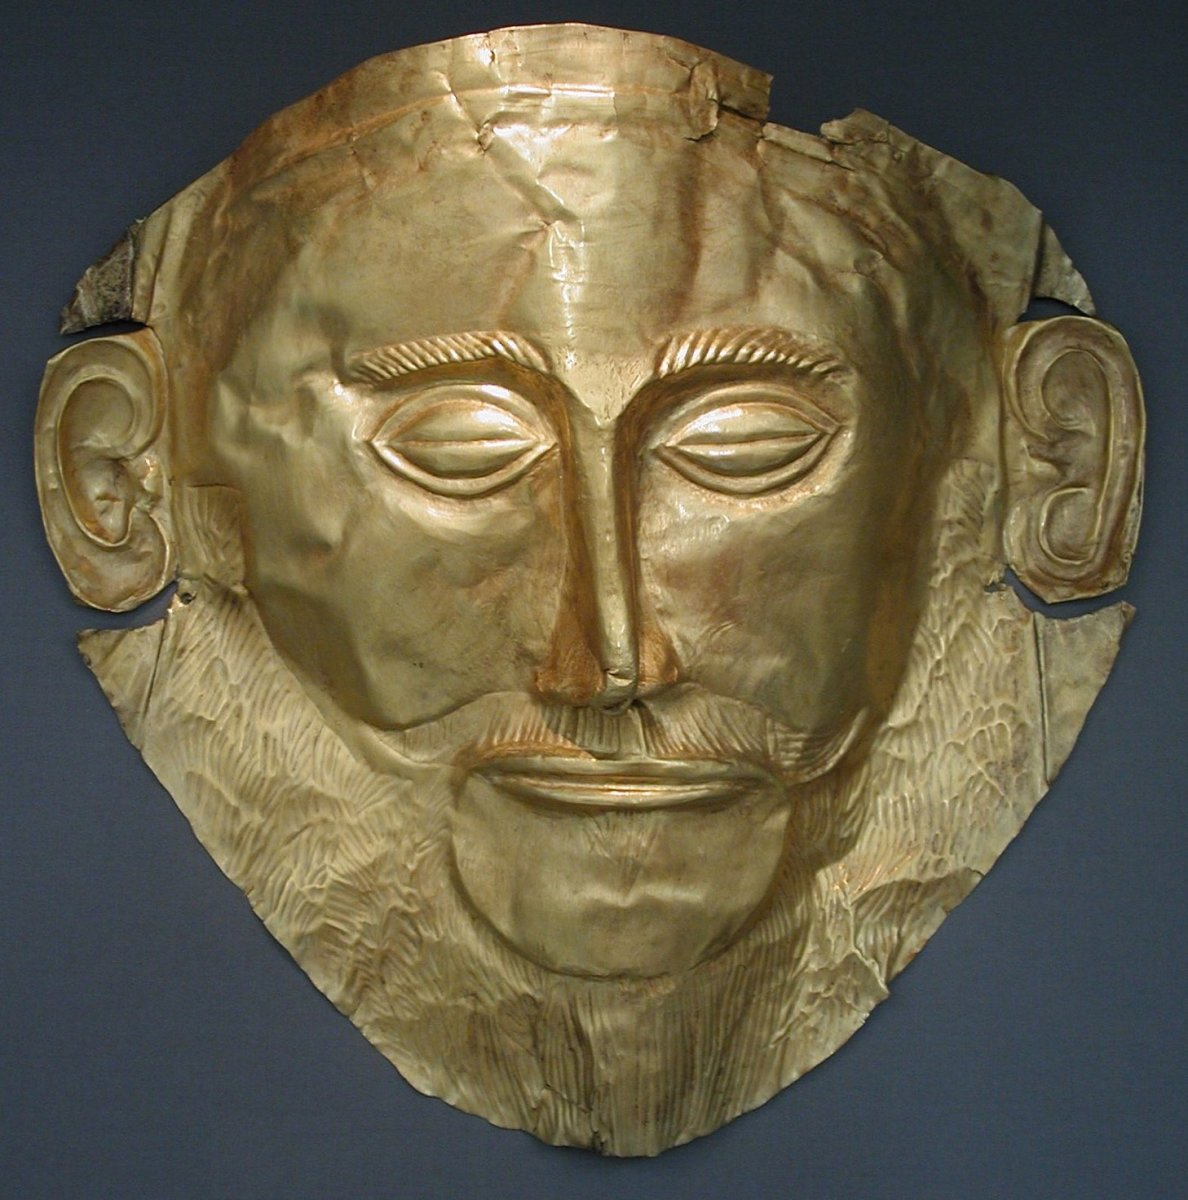 The Mask of Agamemnon, Discovered by Heinrich Schliemann in 1876 at Mycenae.